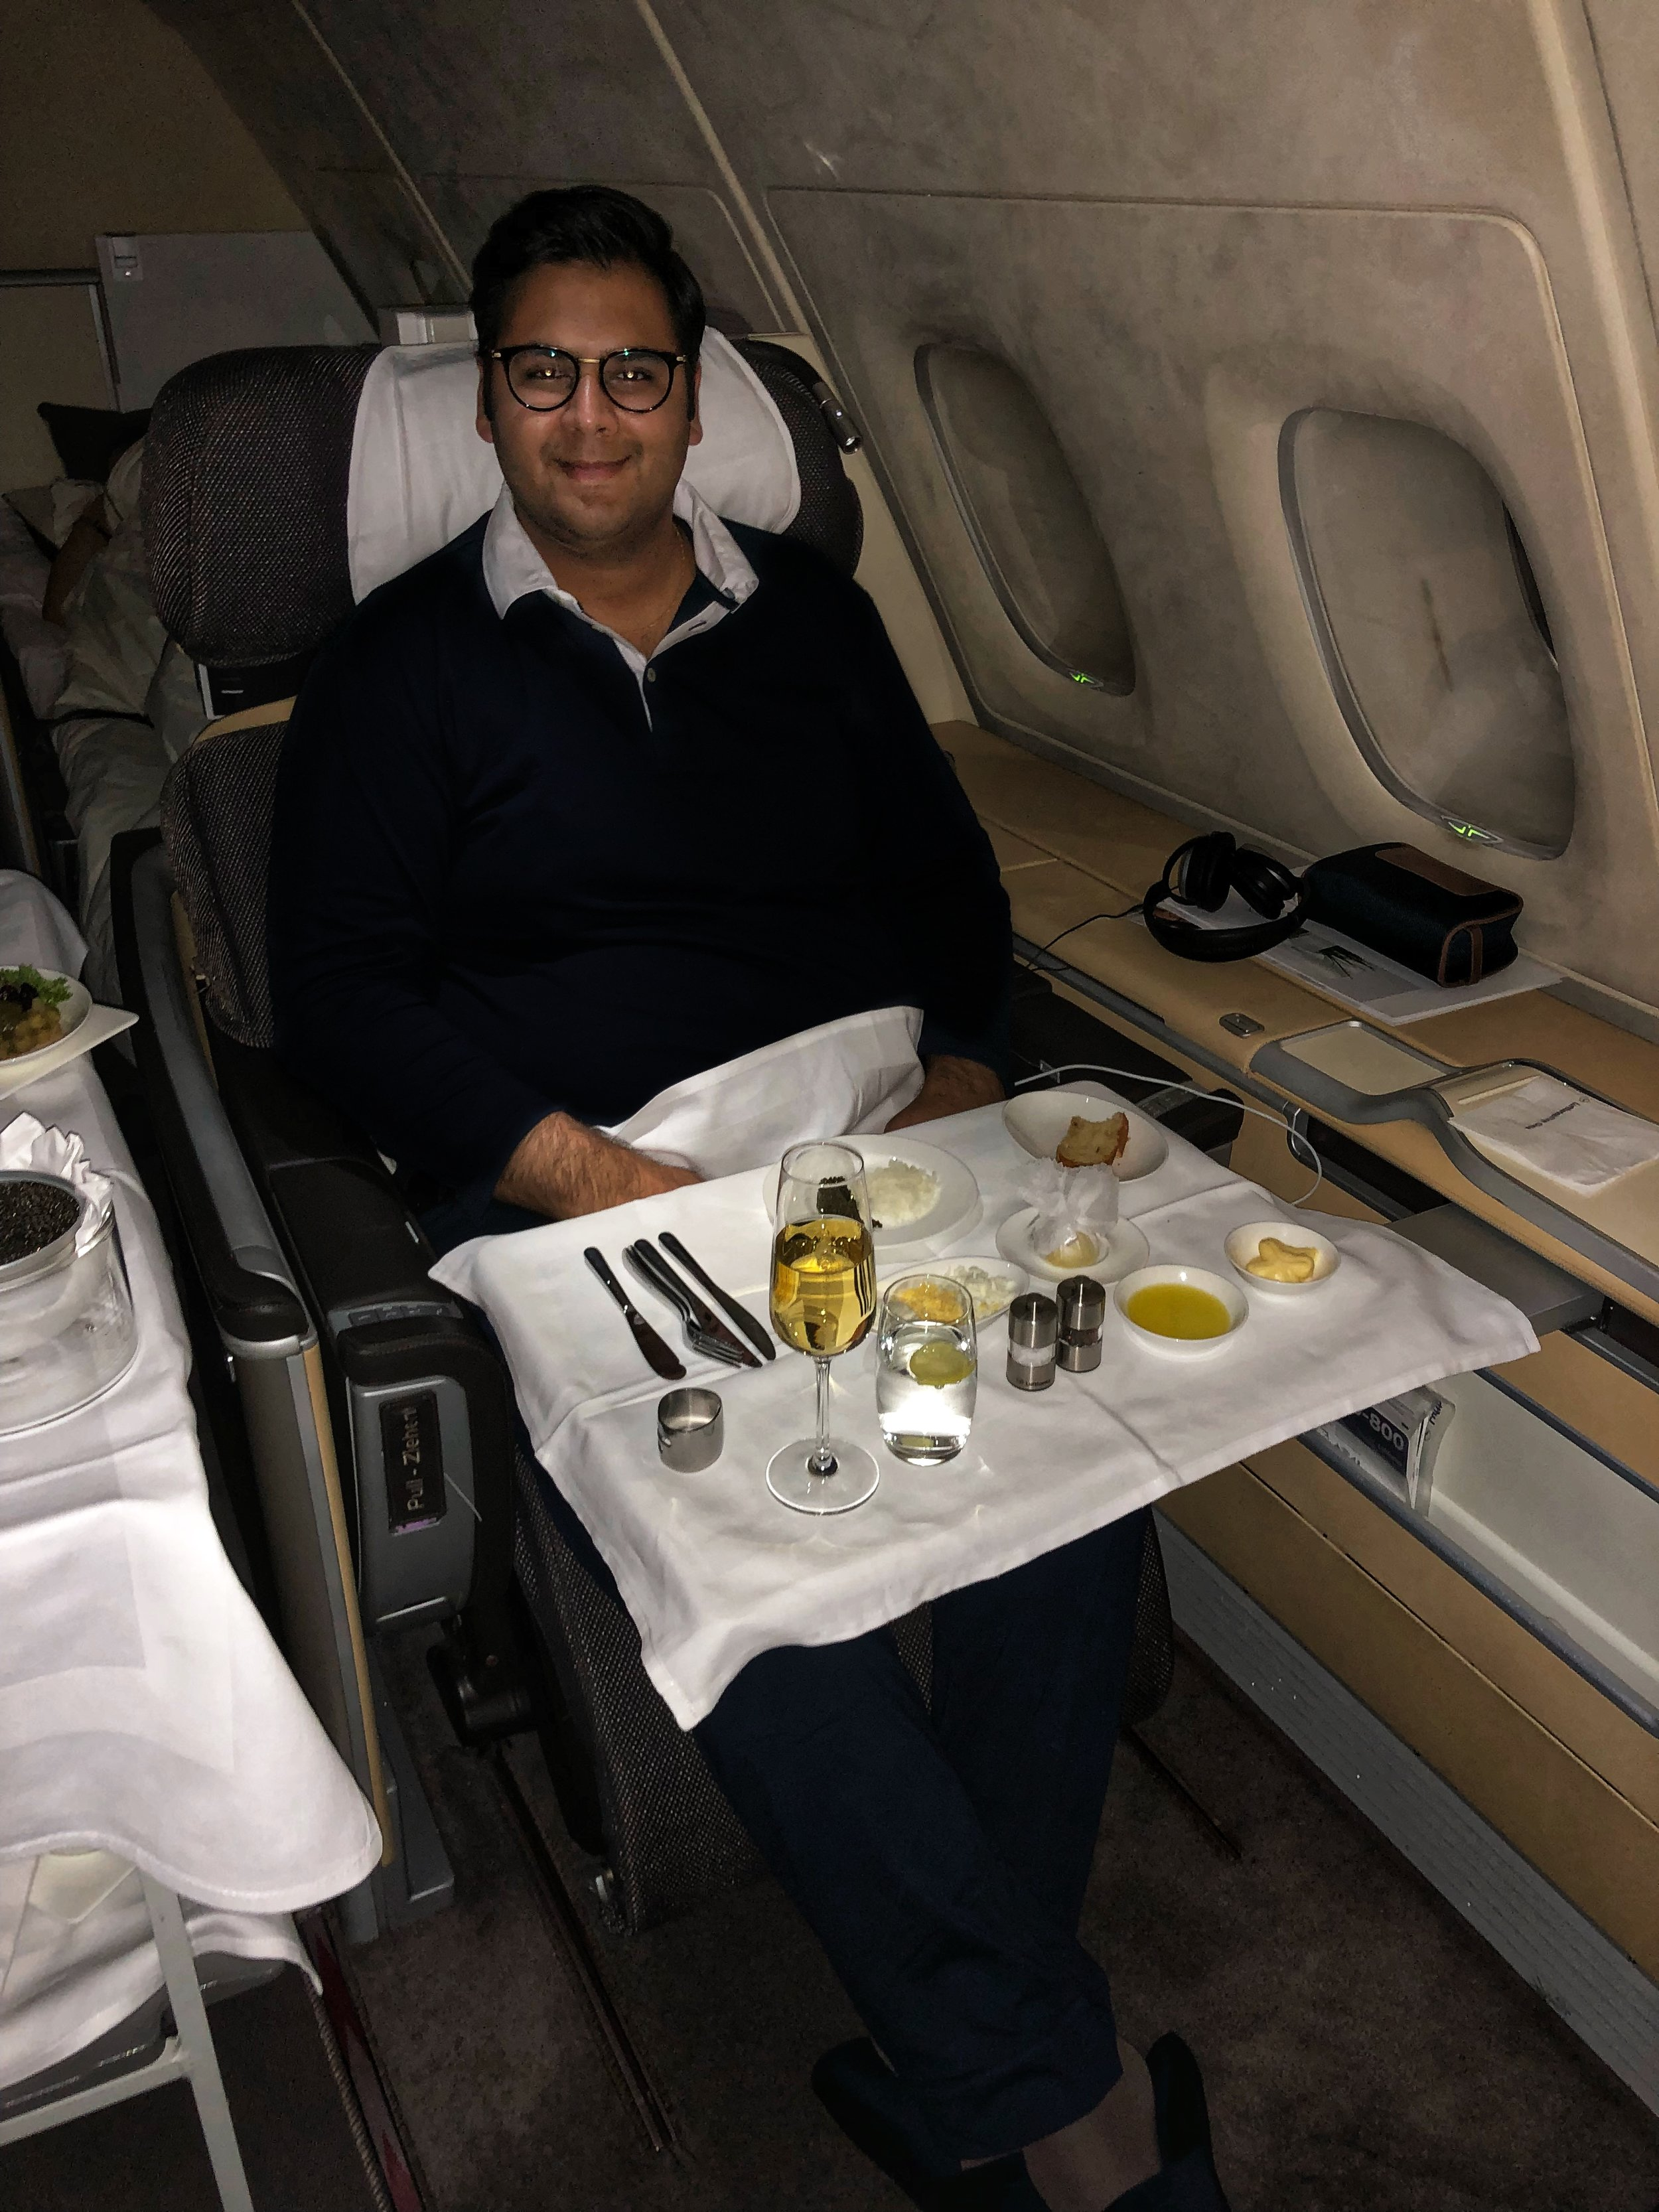 Lufthansa First Class Caviar Service at 35,000 ft